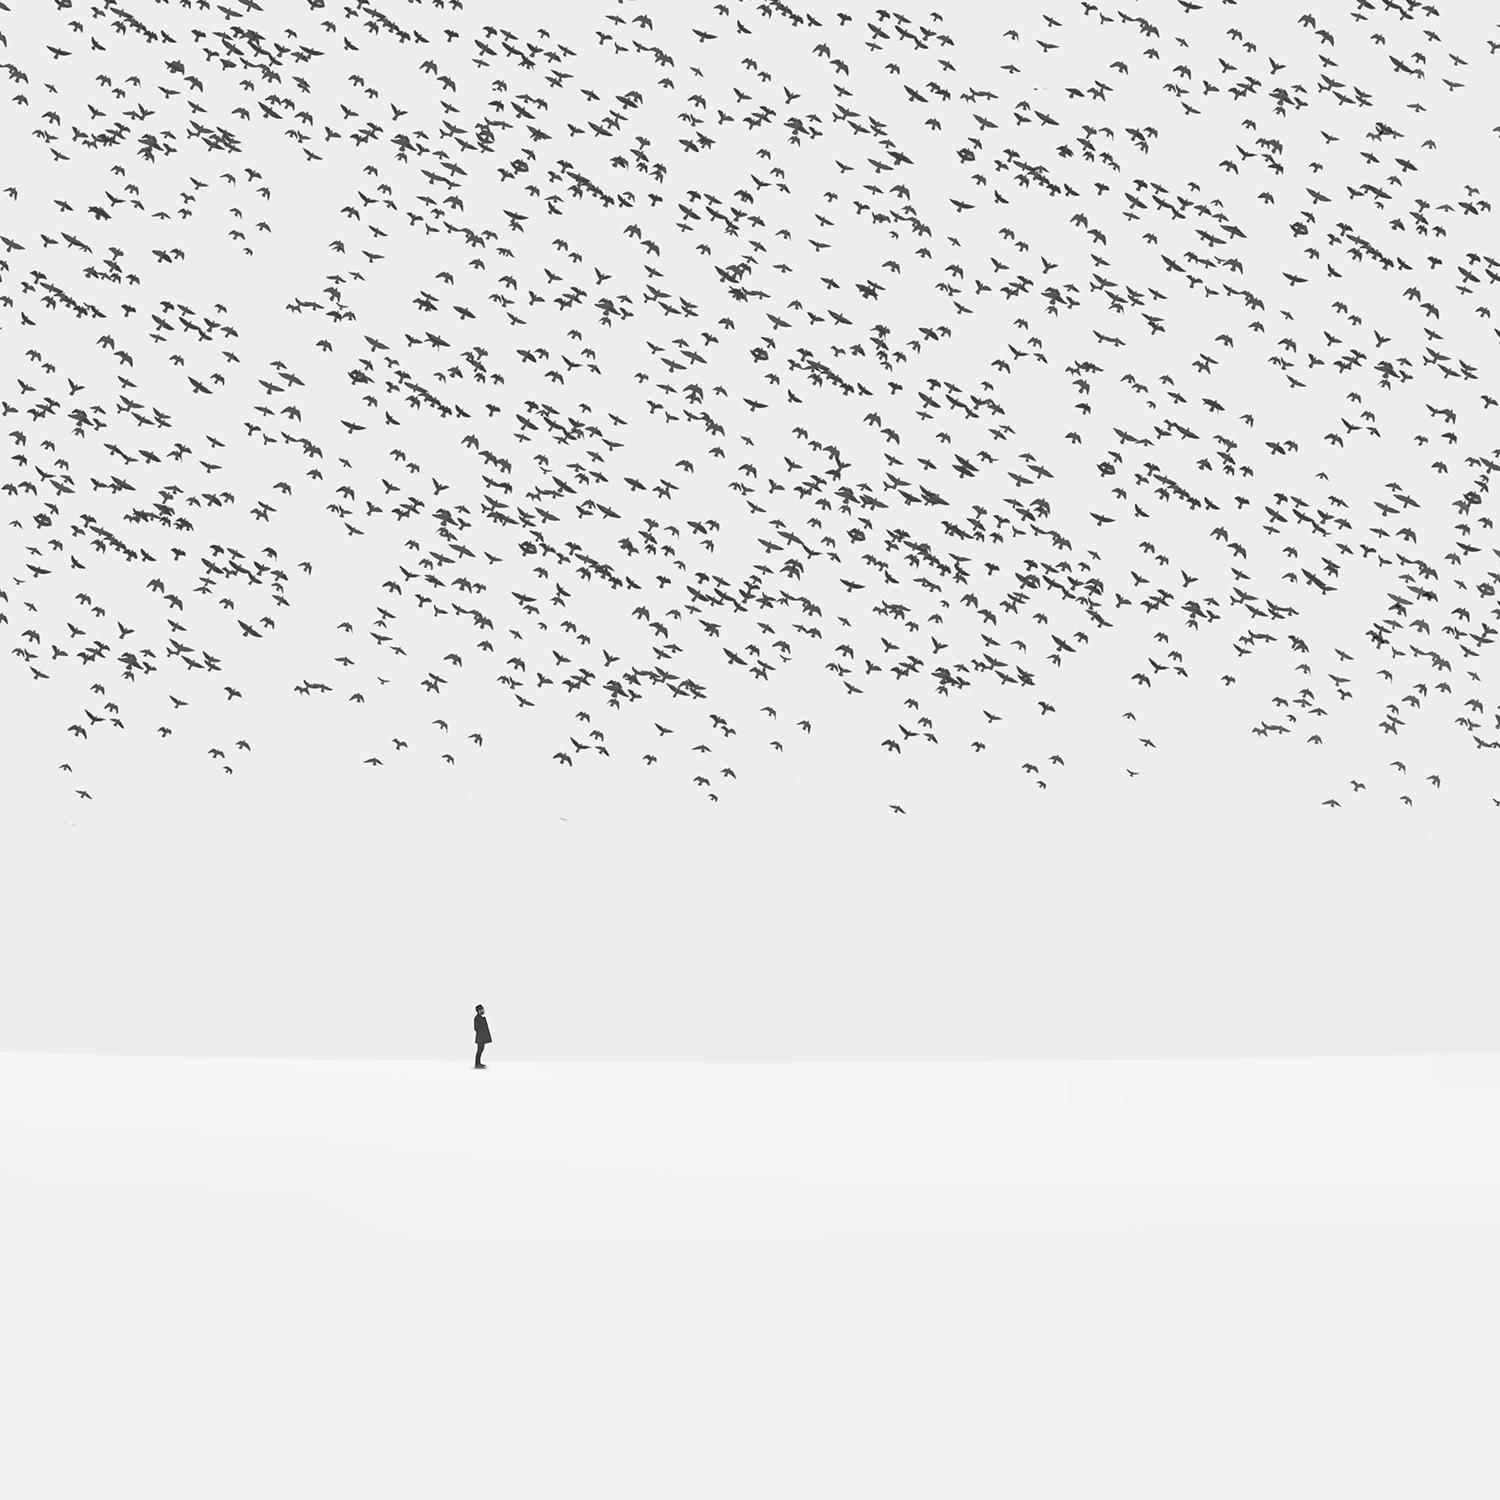 hossein zare surreal photography white flock black